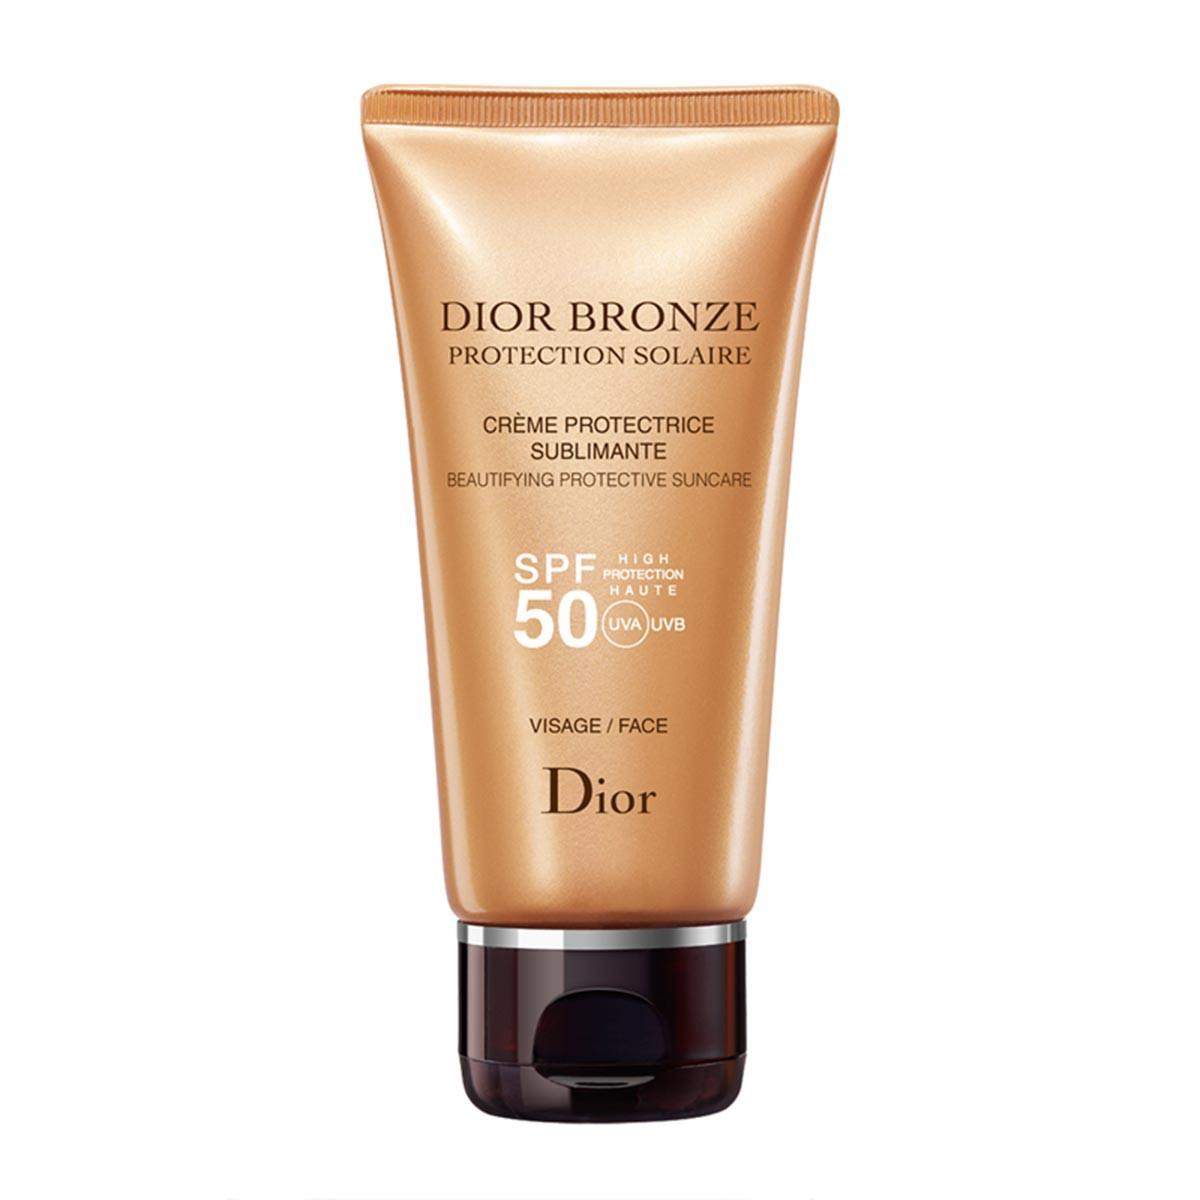 Christian-dior Bronze Protective Creme Sublime Glow Face Spf50 50 Ml